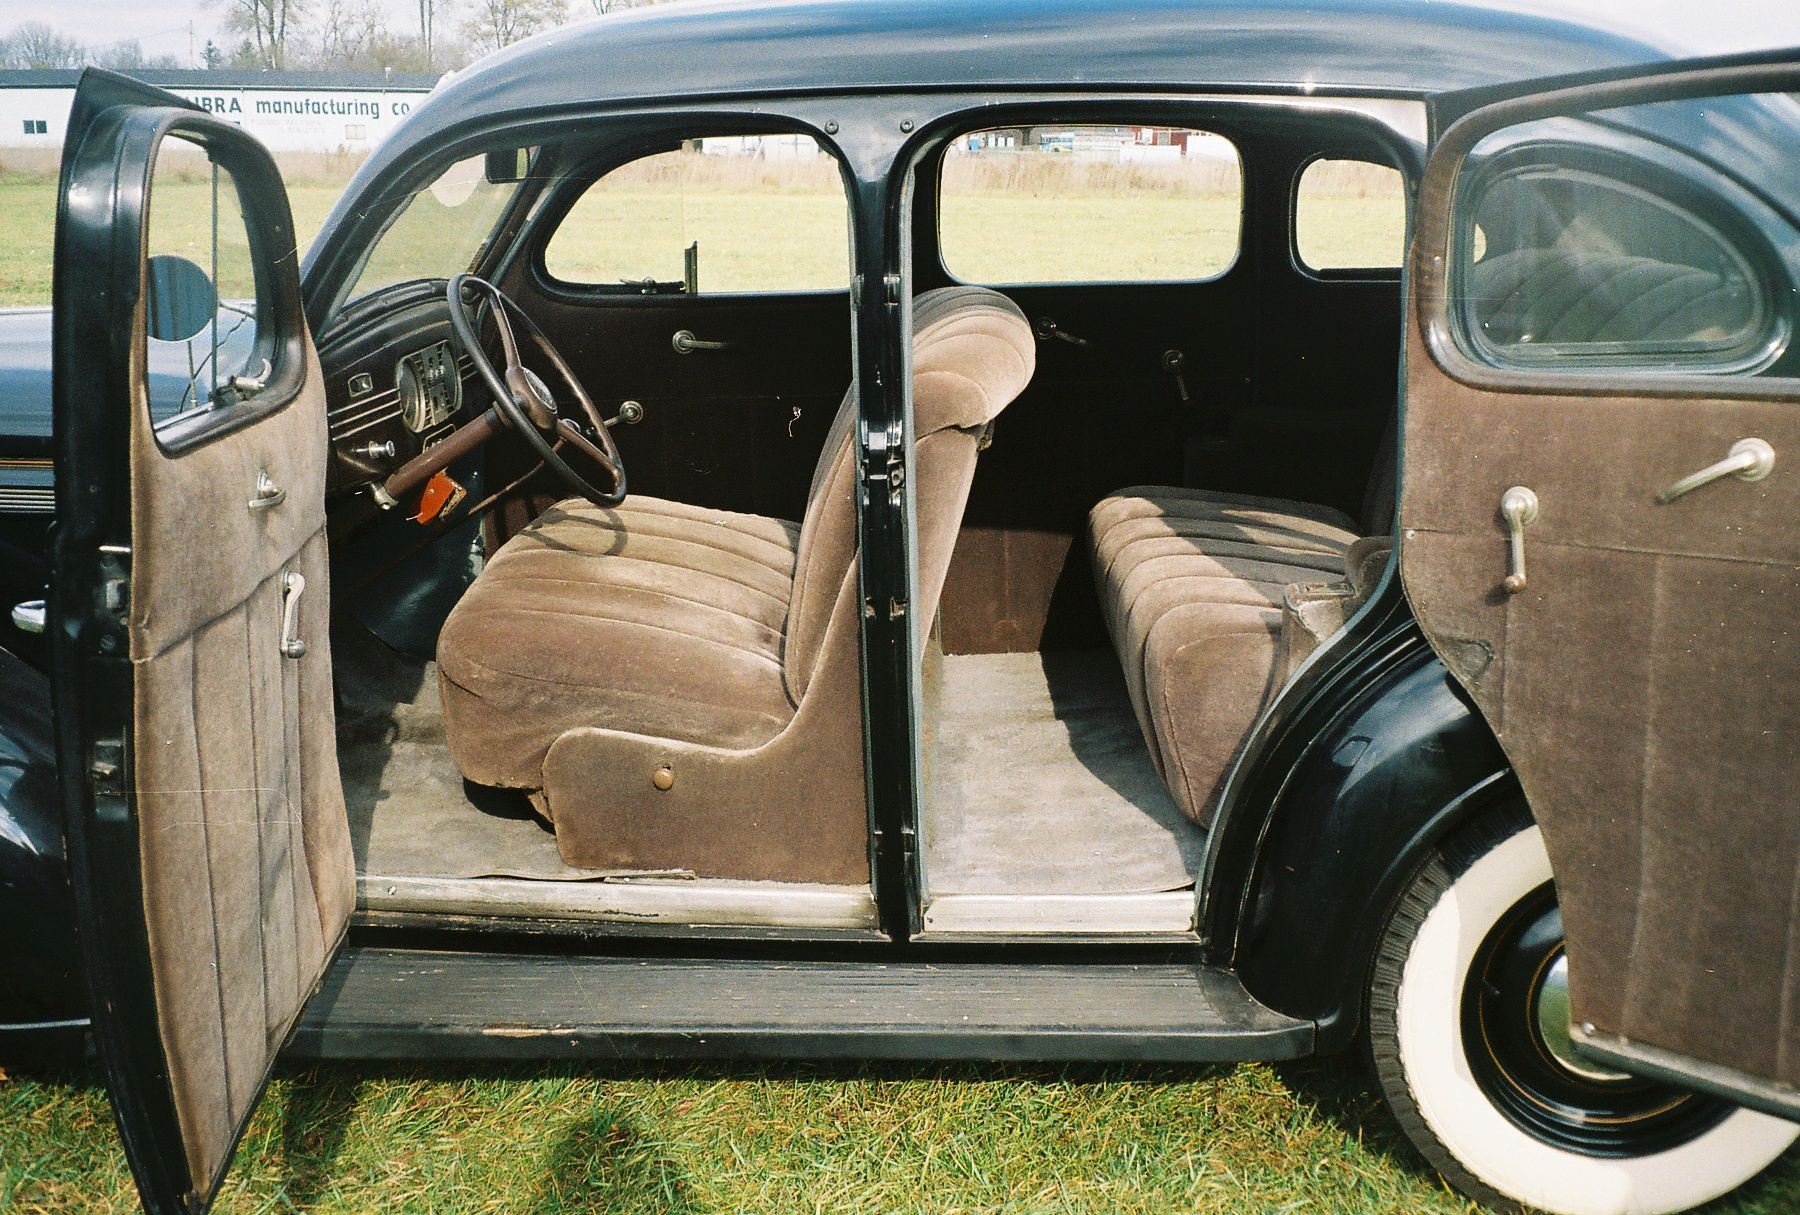 1938 Plymouth P6 Deluxe Four Door Touring Sedan This Is A Super Solid And Straight Car The Body Shows No Signs Of Damage Or Repair Sedan Plymouth Cool Cars